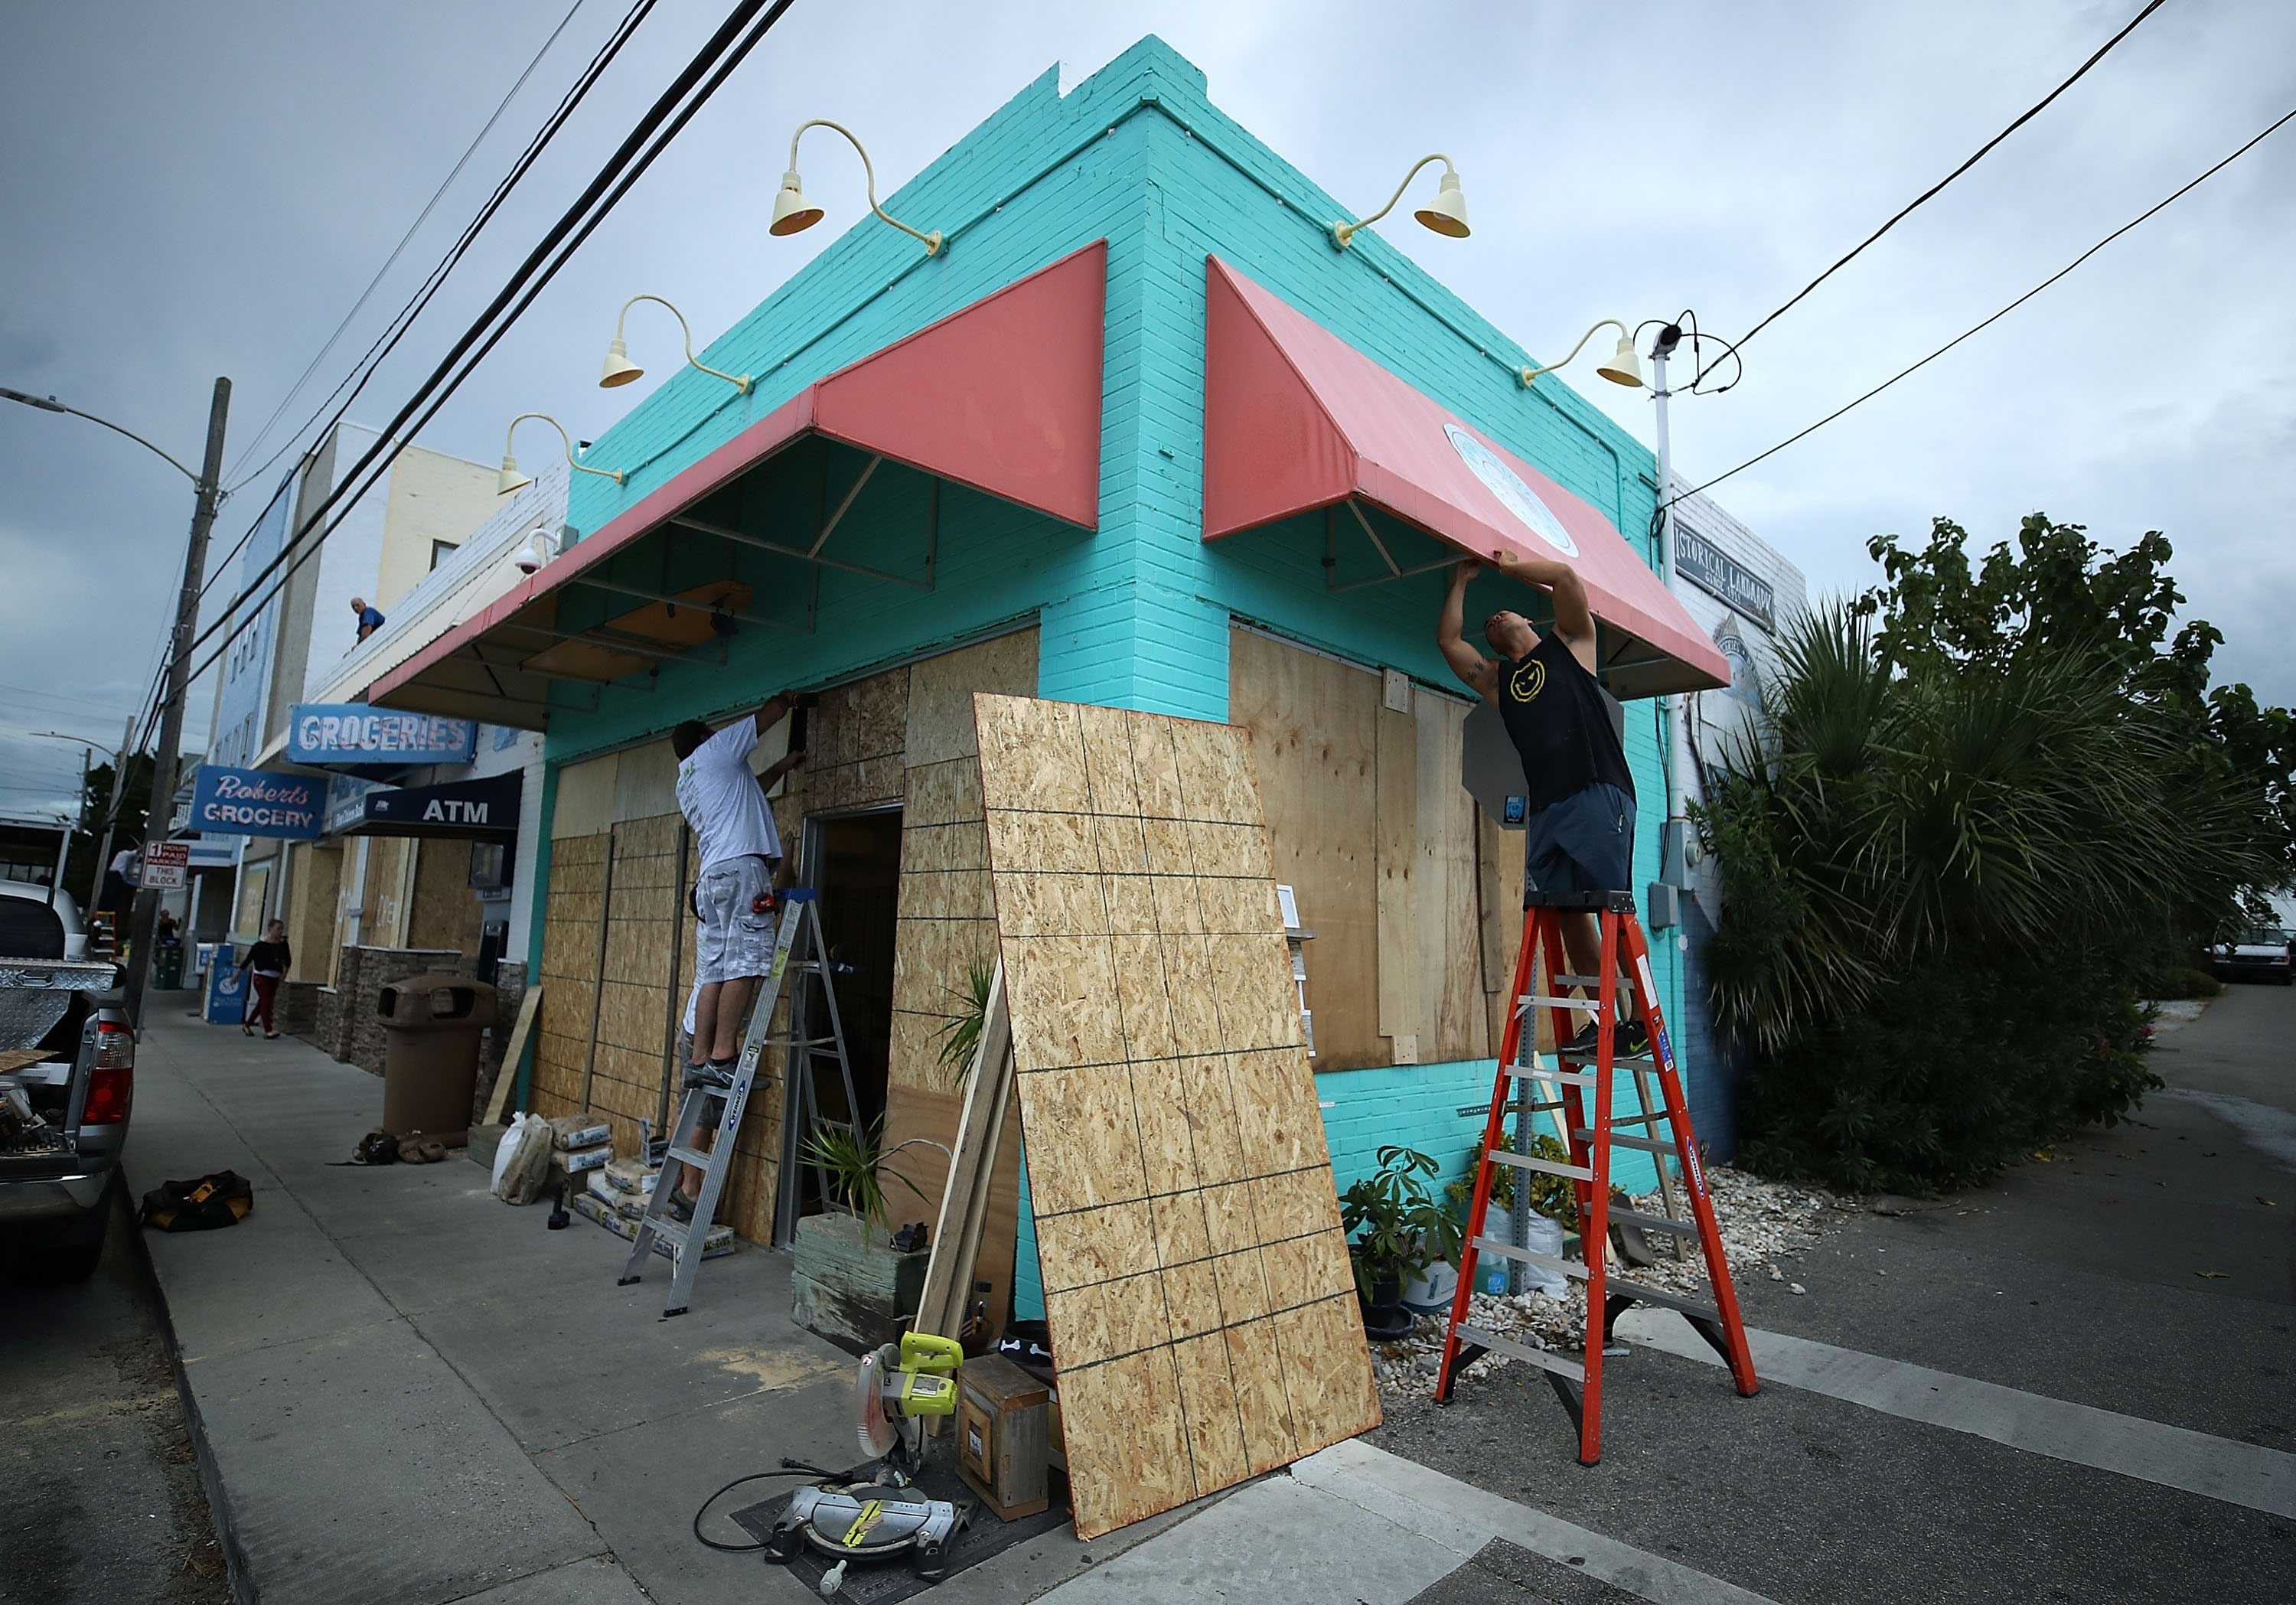 "<div class=""meta image-caption""><div class=""origin-logo origin-image none""><span>none</span></div><span class=""caption-text"">Workers board up the Wrightsville Beach Art Co. while preparing for the arrival of Hurricane Florence on September 11, 2018 in Wrightsville Beach, N.C. (Mark Wilson/Getty Images)</span></div>"